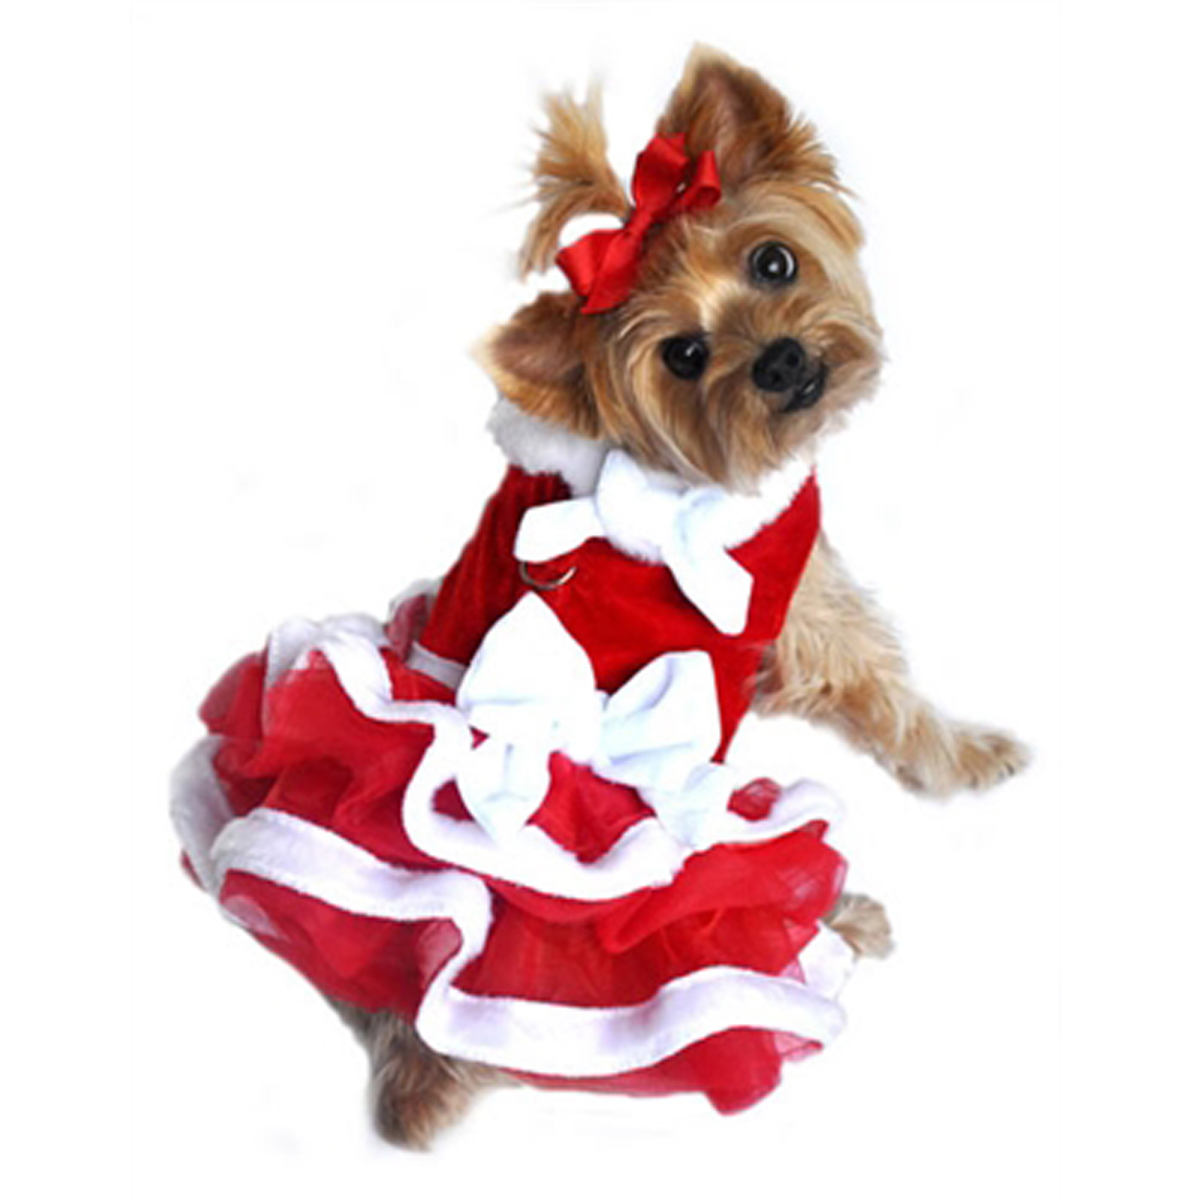 Dog Christmas Dress photos